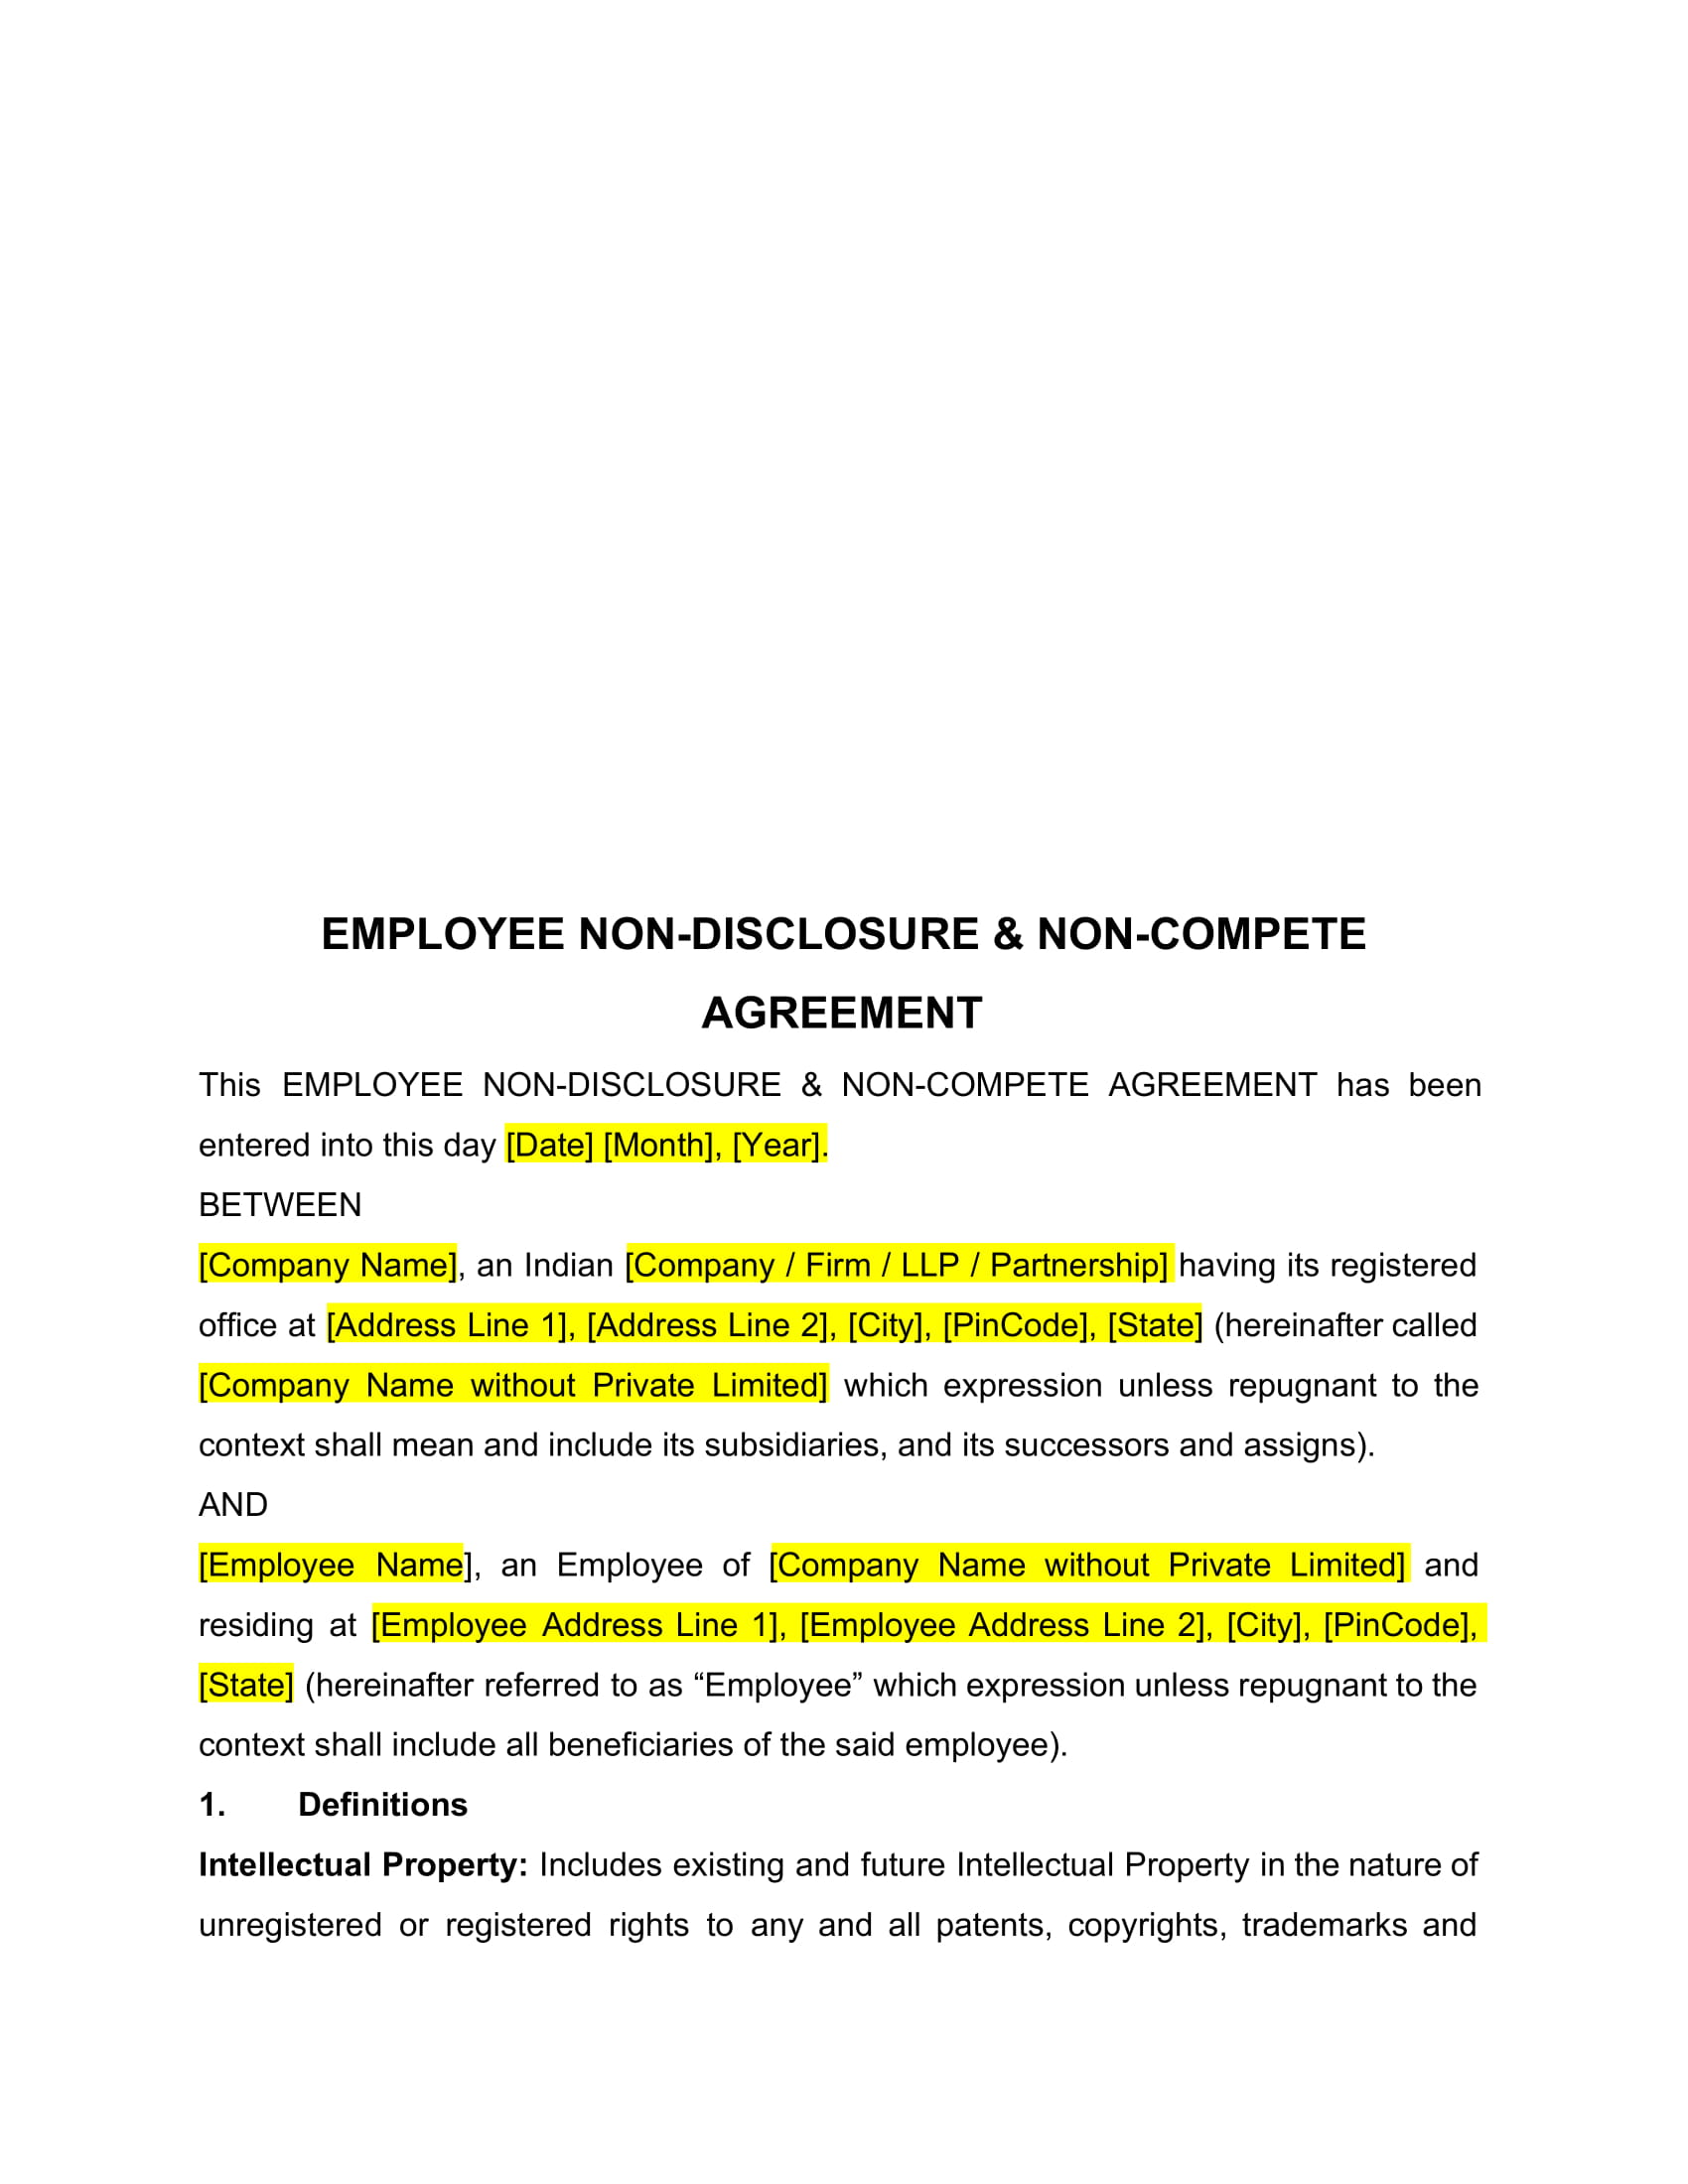 basic employee non disclosure and non compete agreement